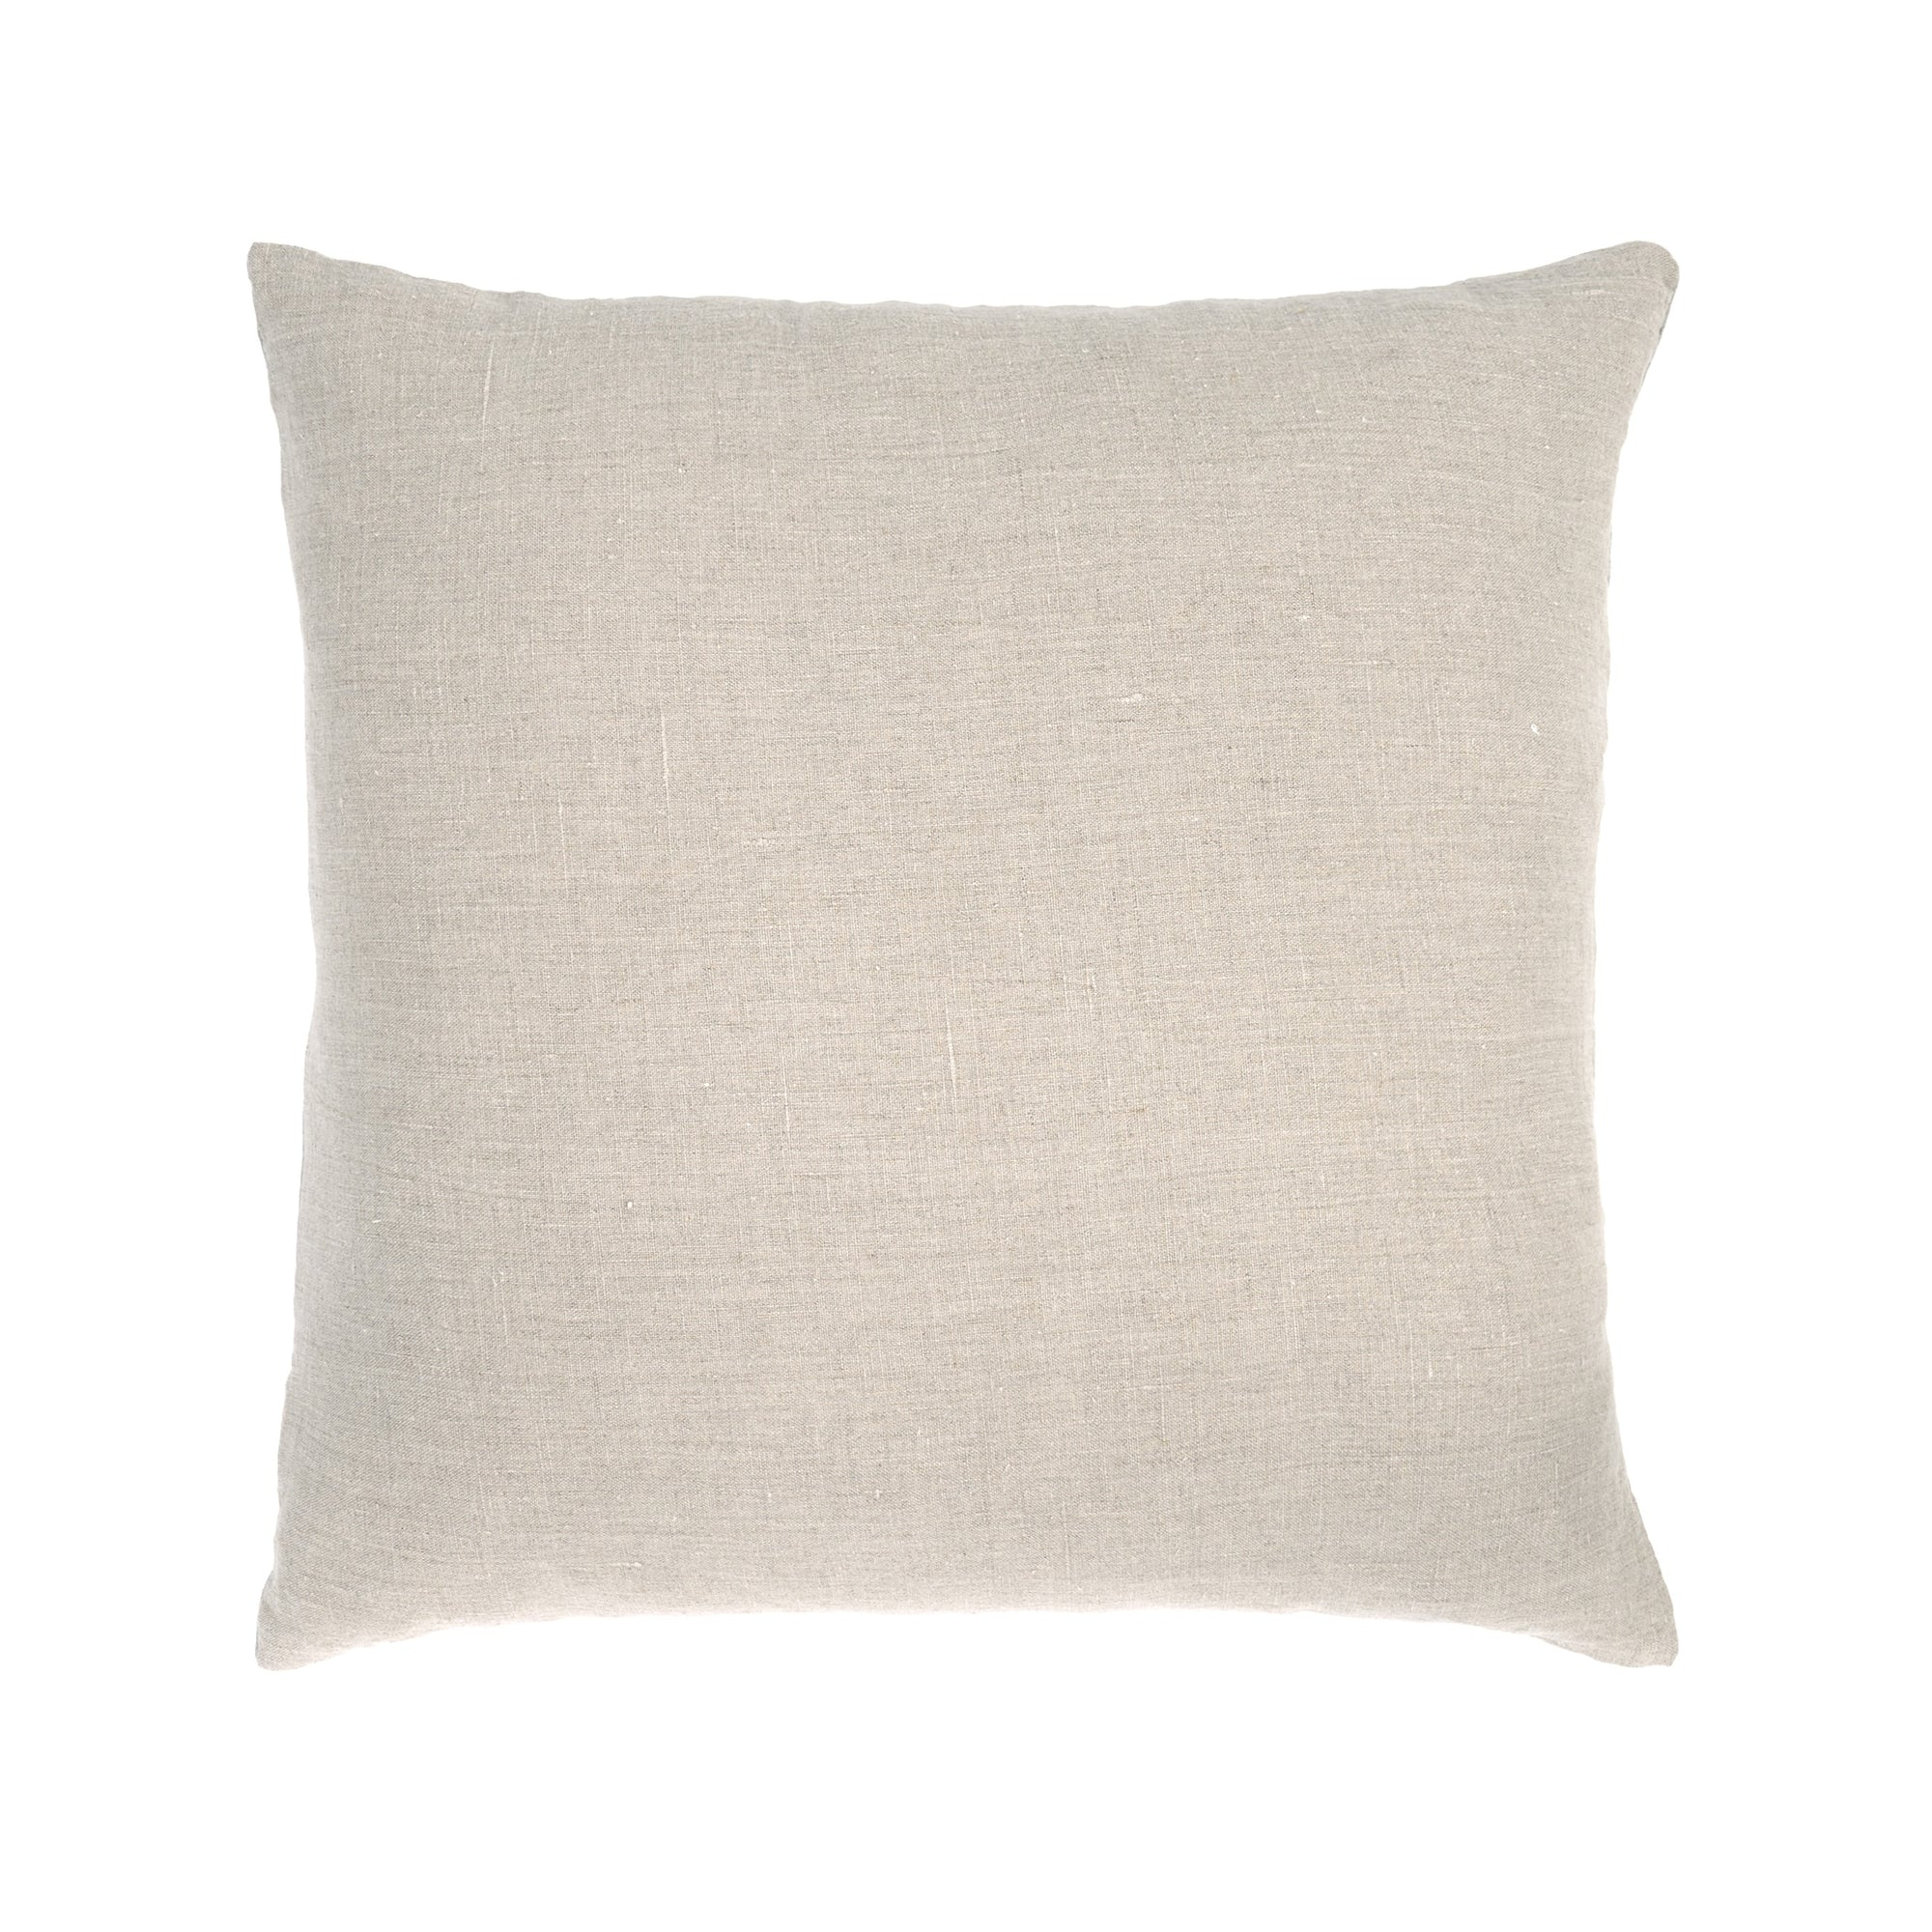 Blue Linen Sauvage cushion